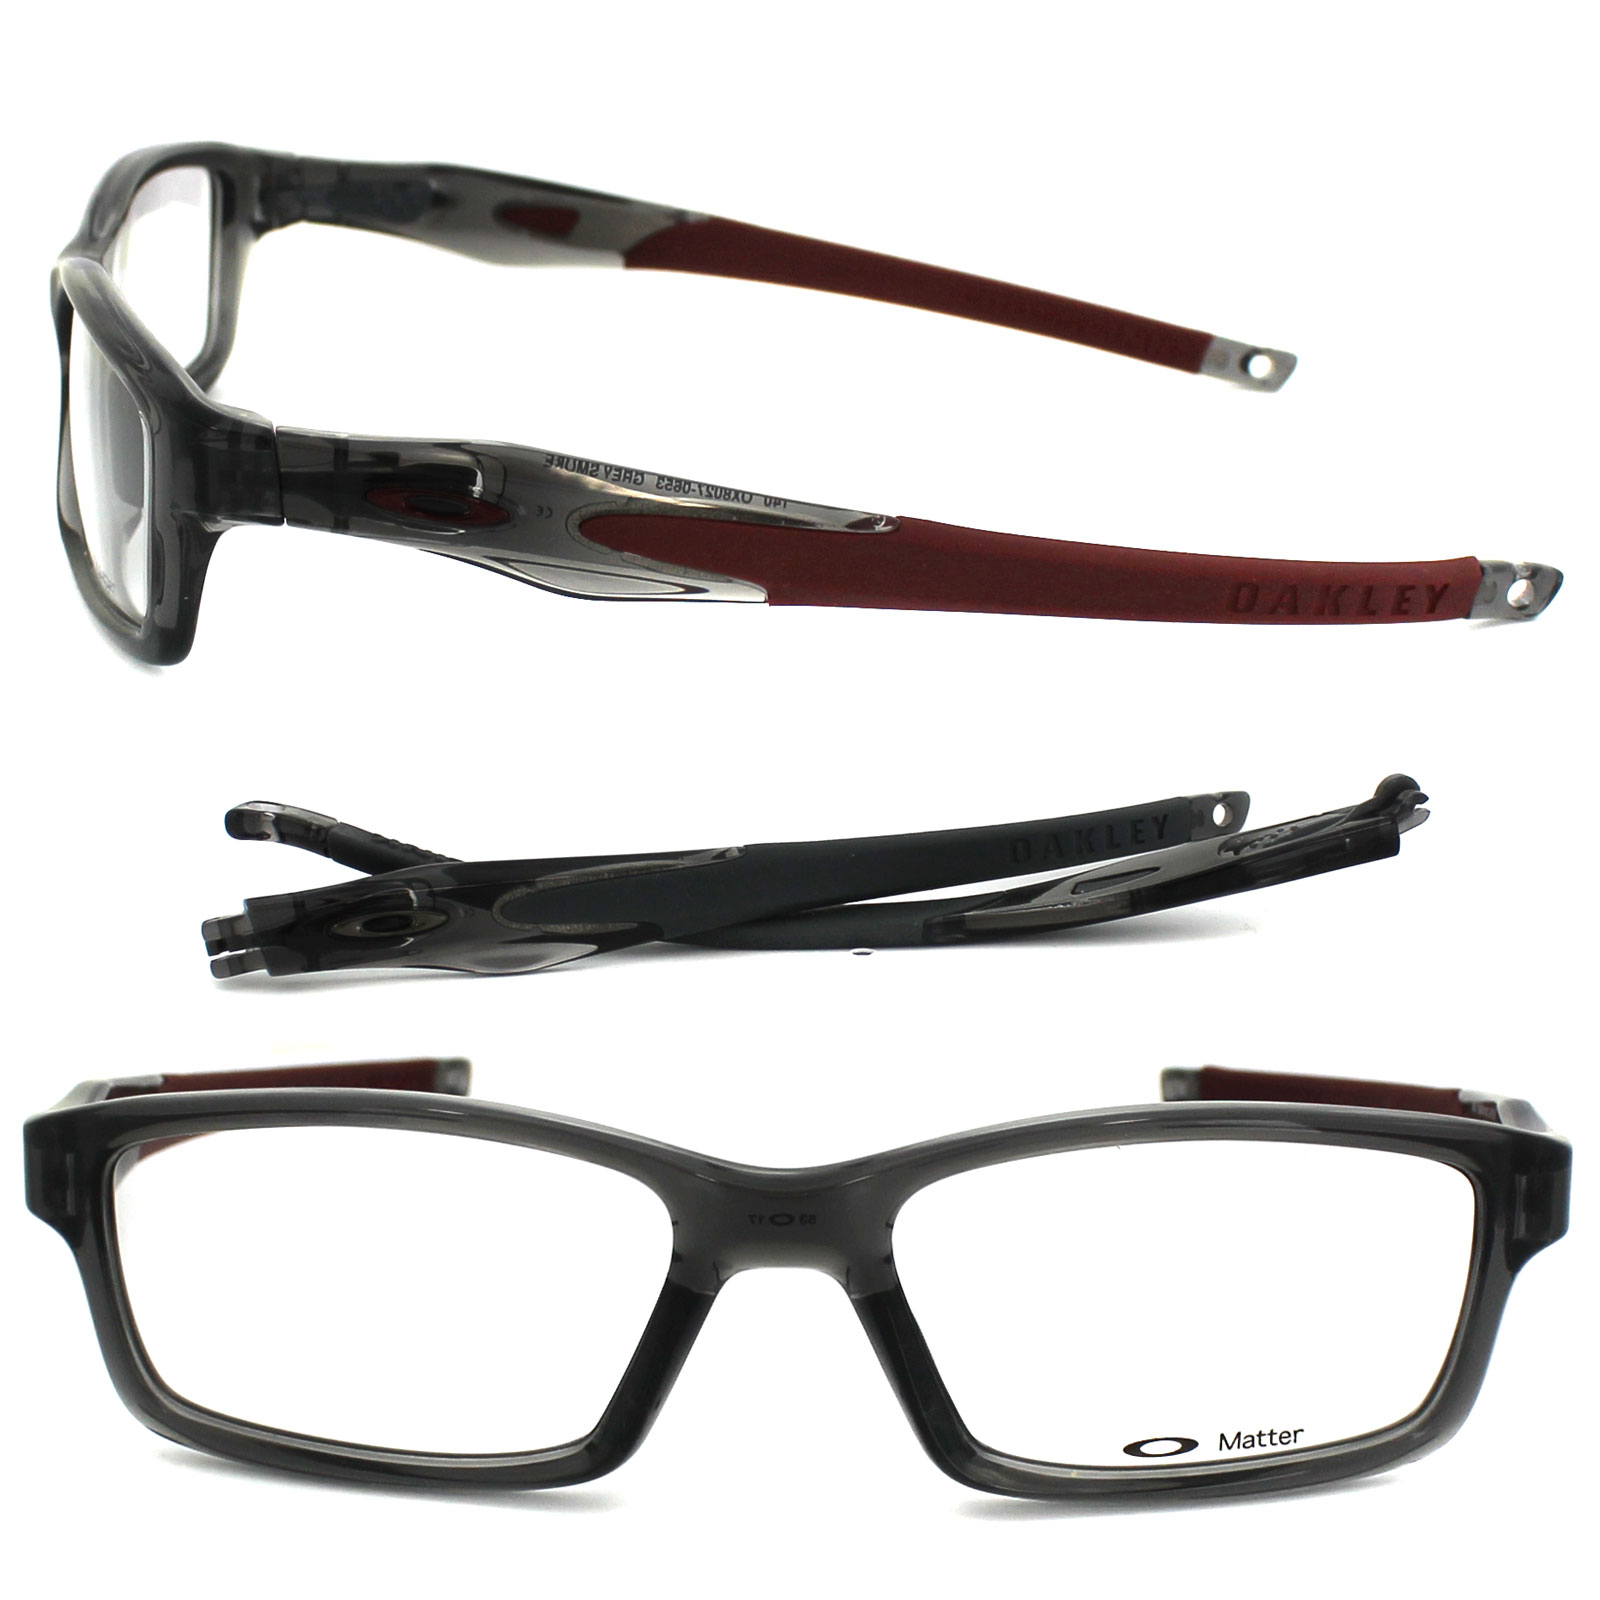 52afd46733c All products listed on Ebay by Discounted Sunglasses are 100% genuine